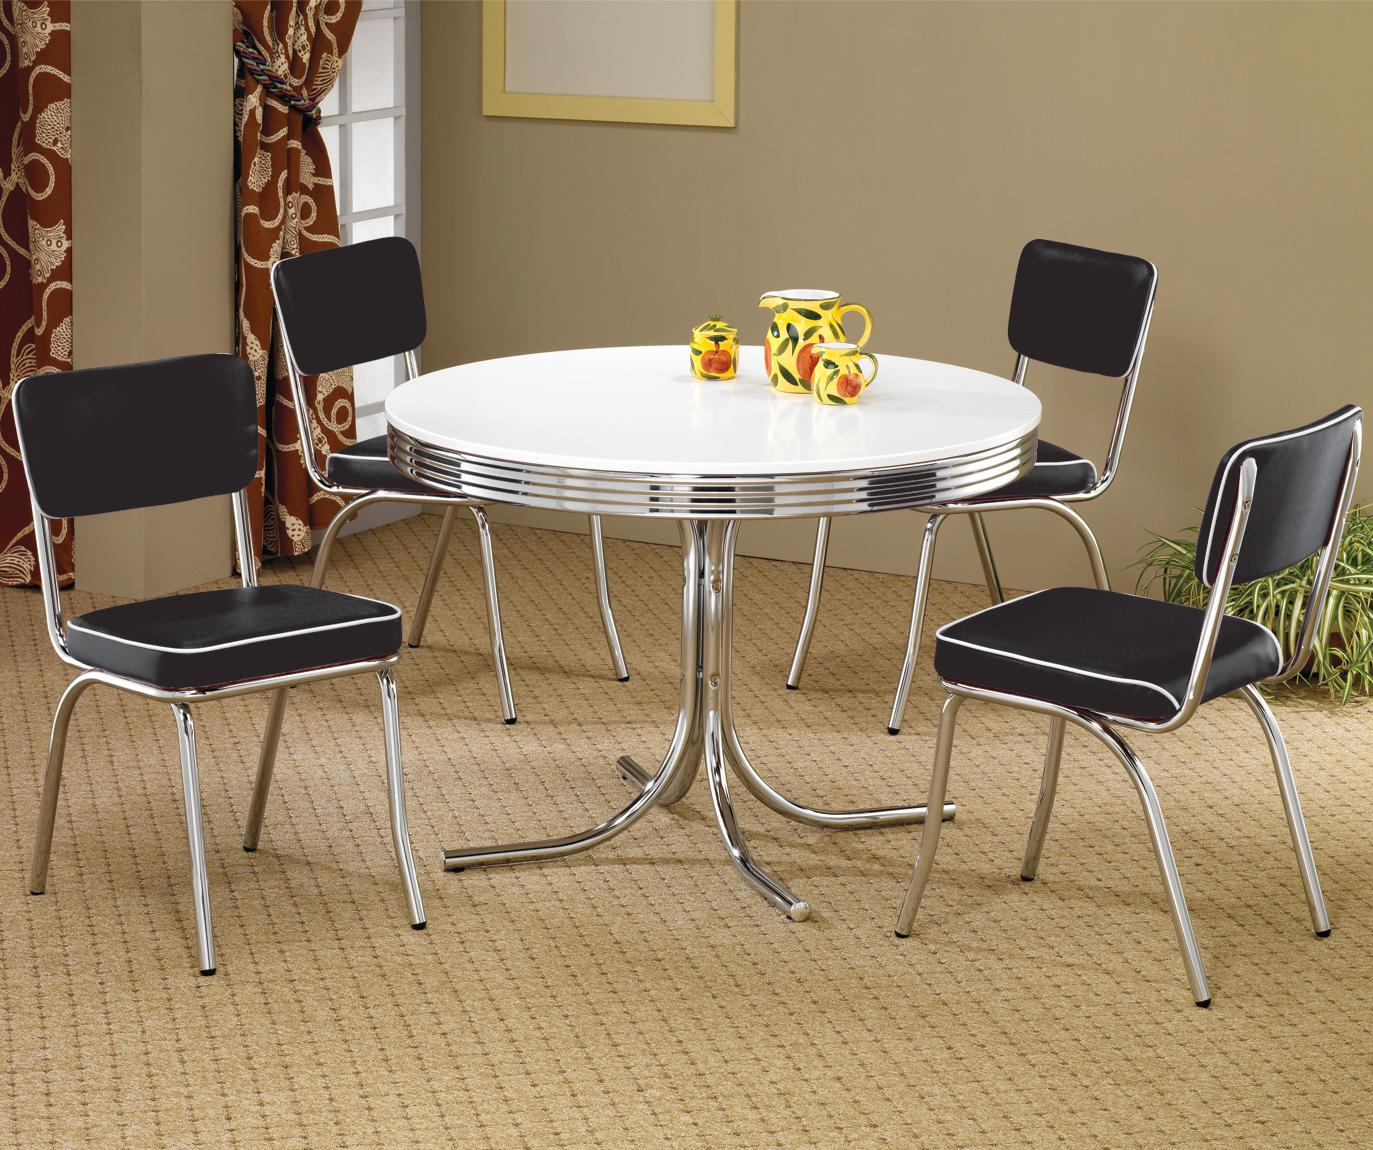 Coaster Cleveland Round Chrome Plated Dining Table - Coaster Fine Furniture & Coaster Cleveland Round Chrome Plated Dining Table - Coaster Fine ...